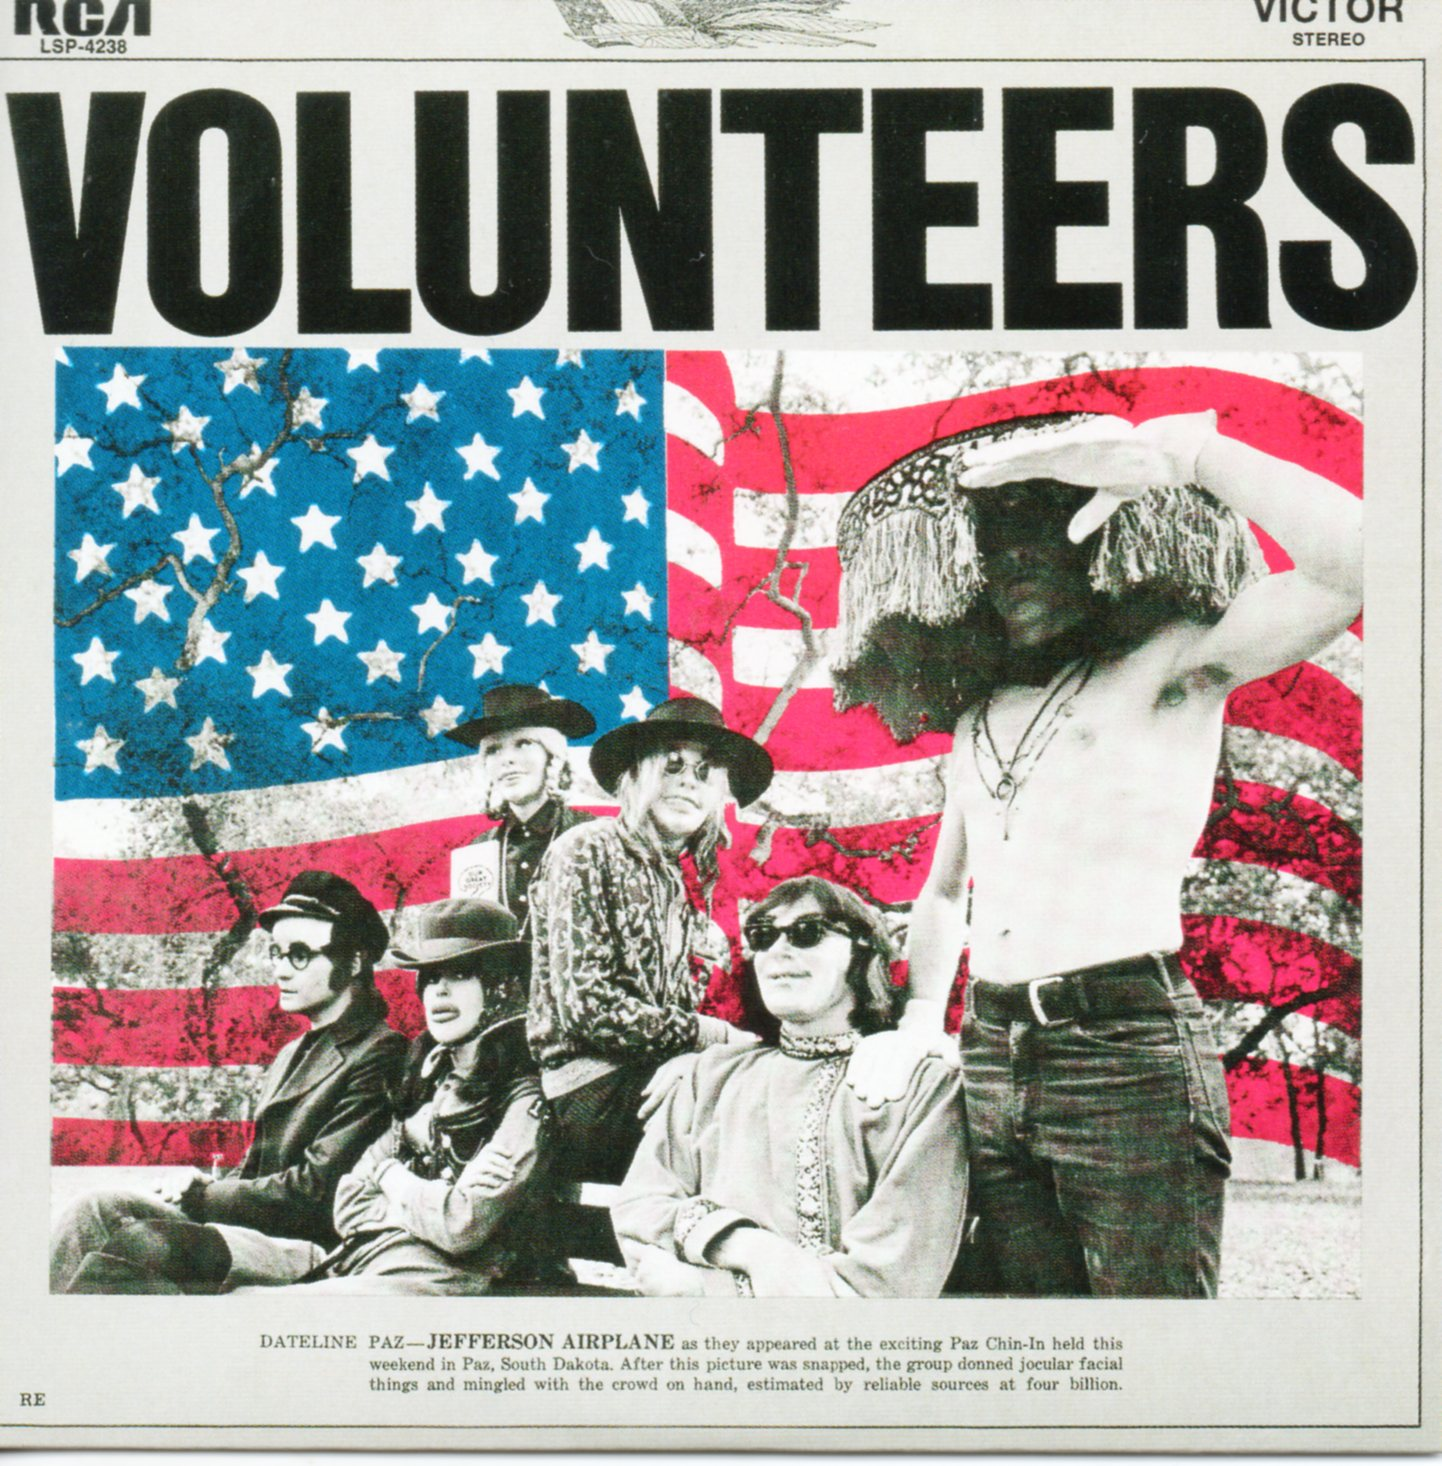 JEFFERSON AIRPLANE - Volunteers - Mini LP - CARD SLEEVE 15-track (Including 5 Live Tracks) - CD